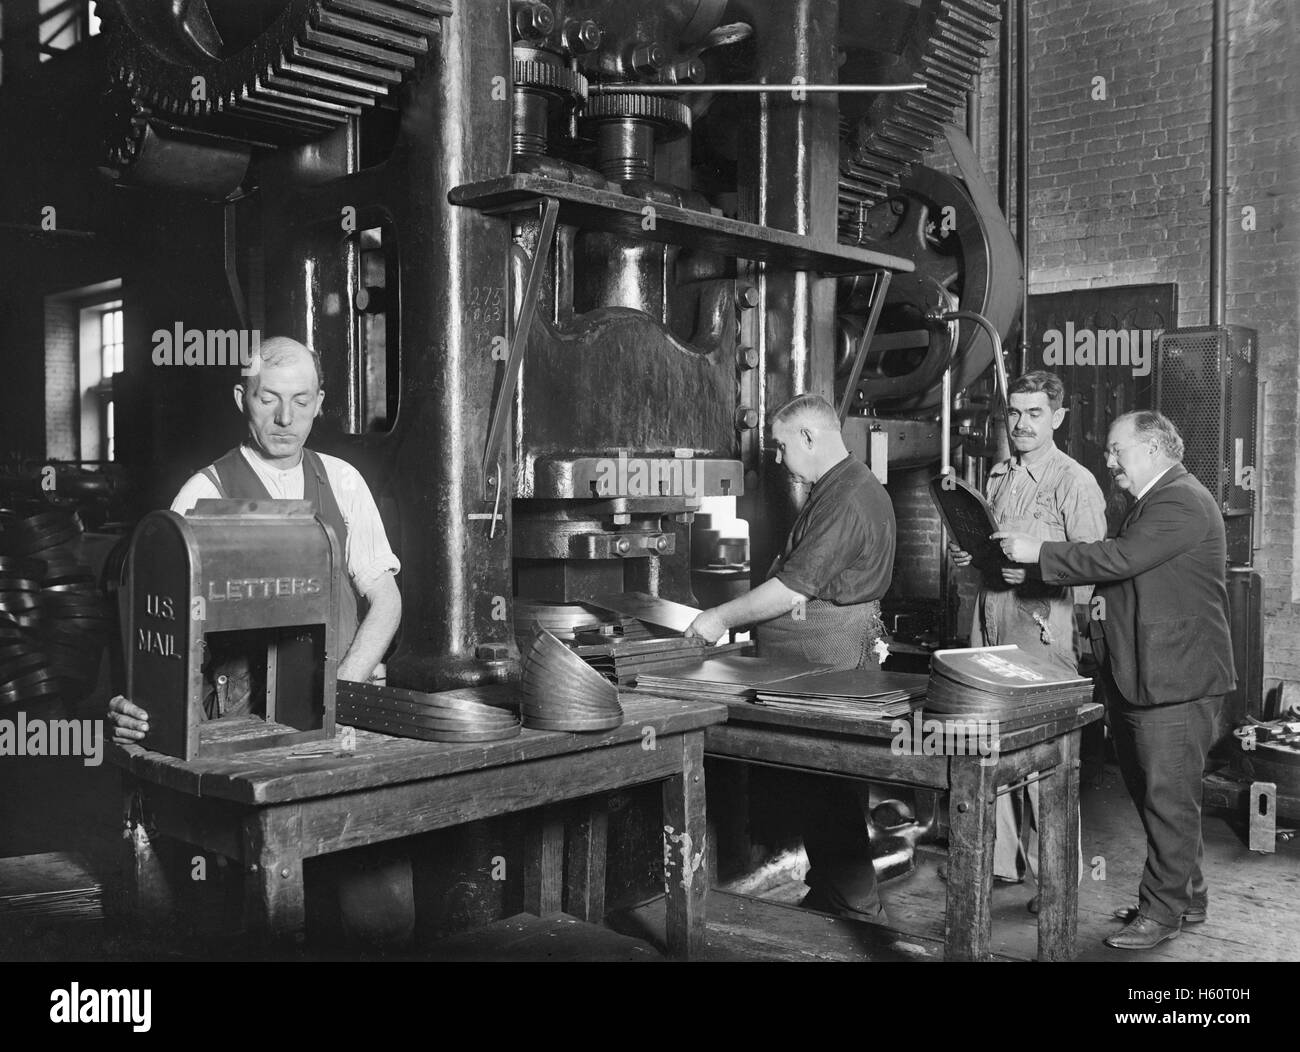 Workers Making Mailboxes, Washington Navy Yard, Washington DC, USA, National Photo Company, November 1922 - Stock Image